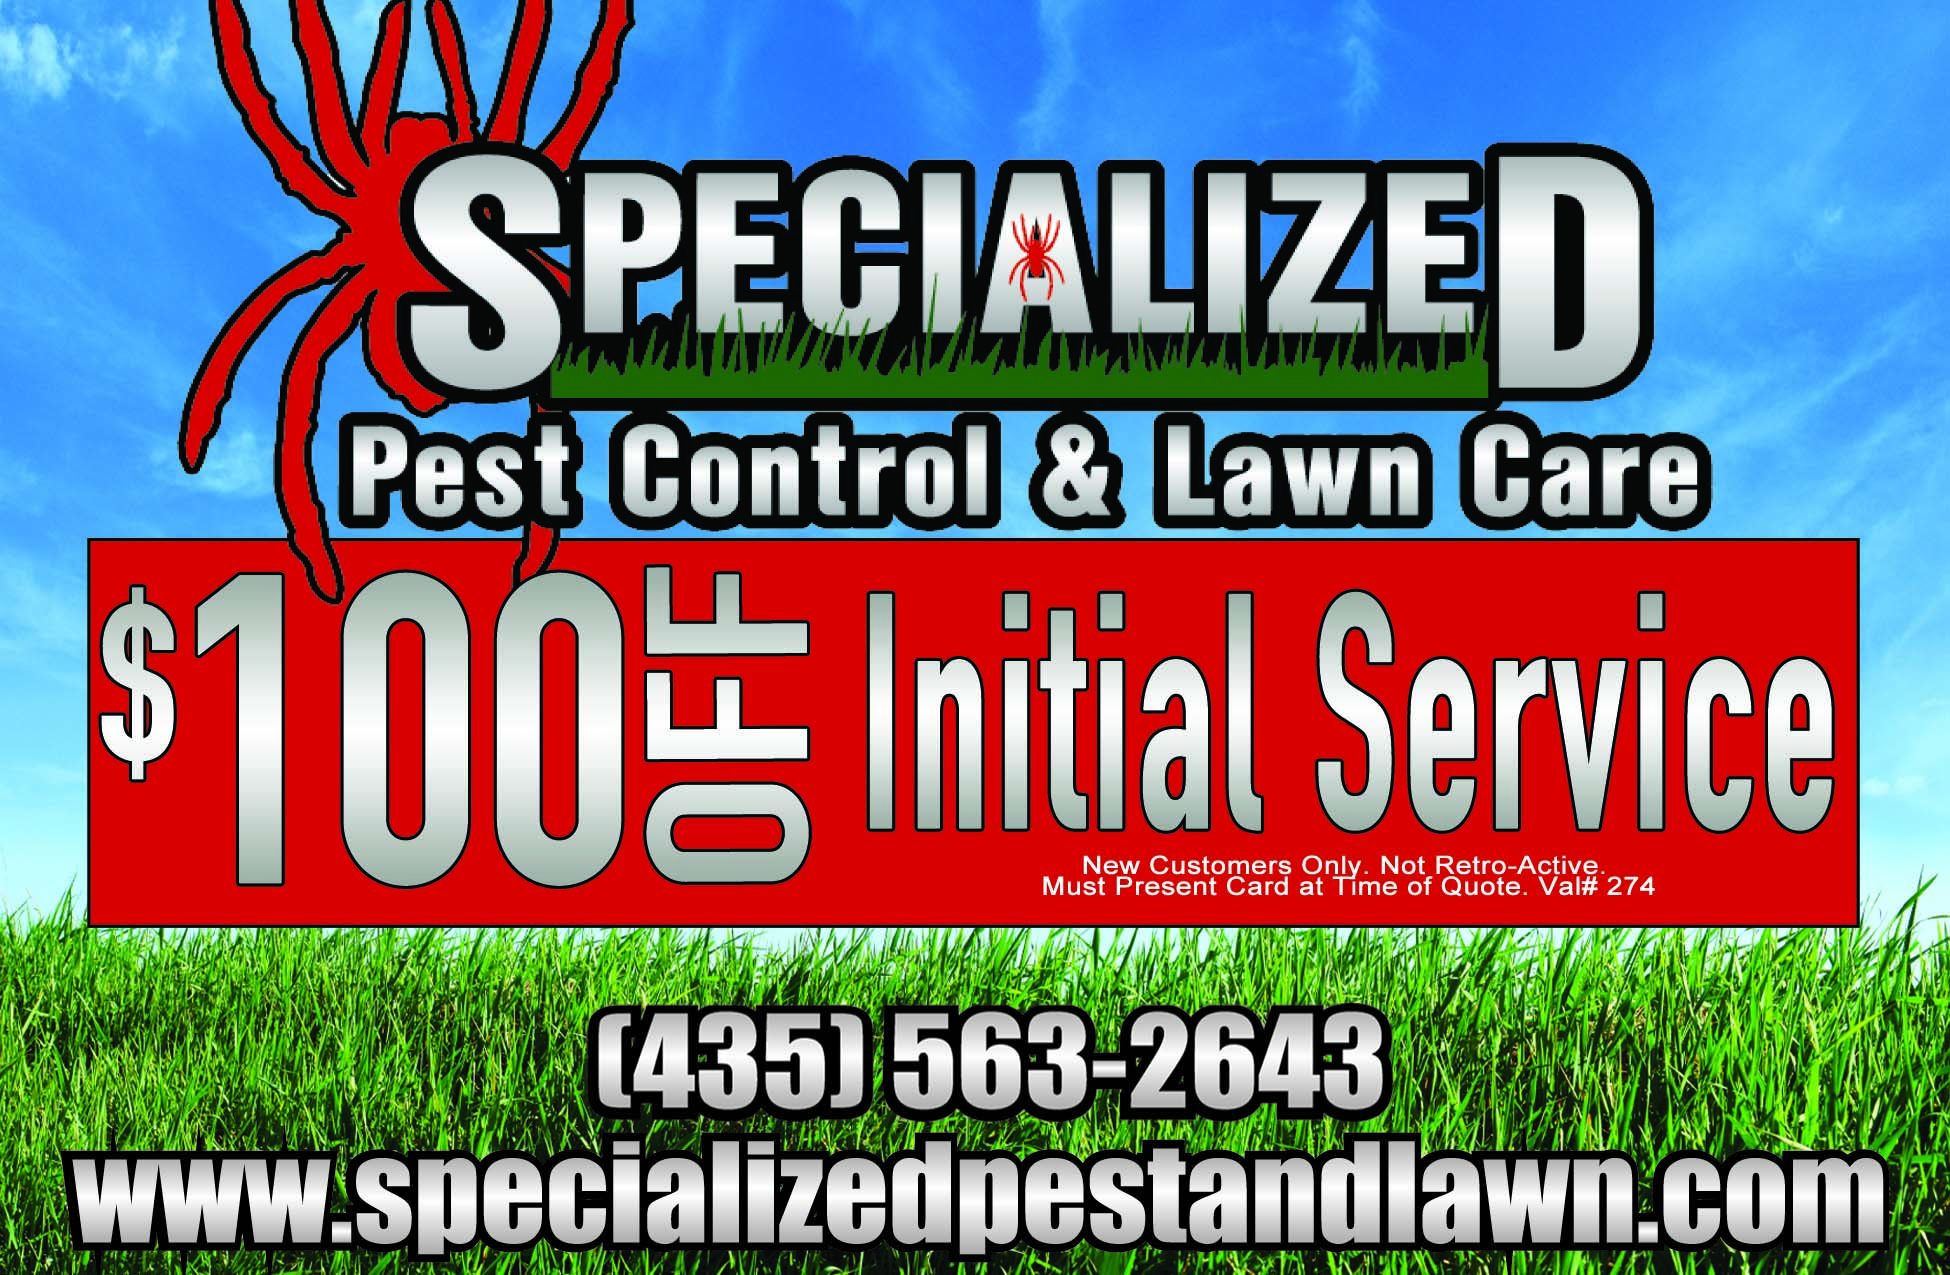 Specialized Pest Control and Lawn Care Logan Utah